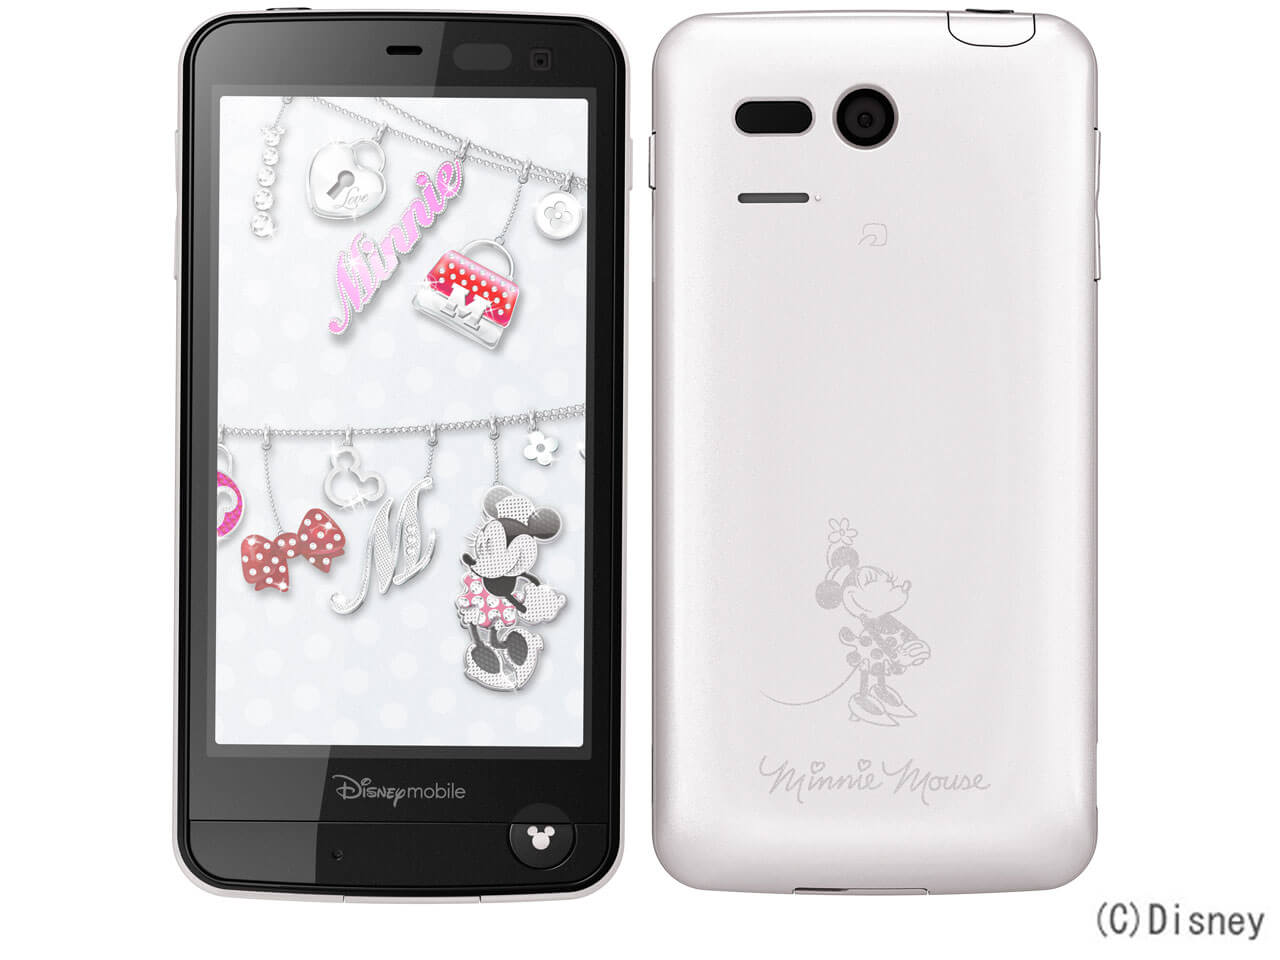 Disney Mobile SHARP Disney Mobile on SoftBank DM013SH